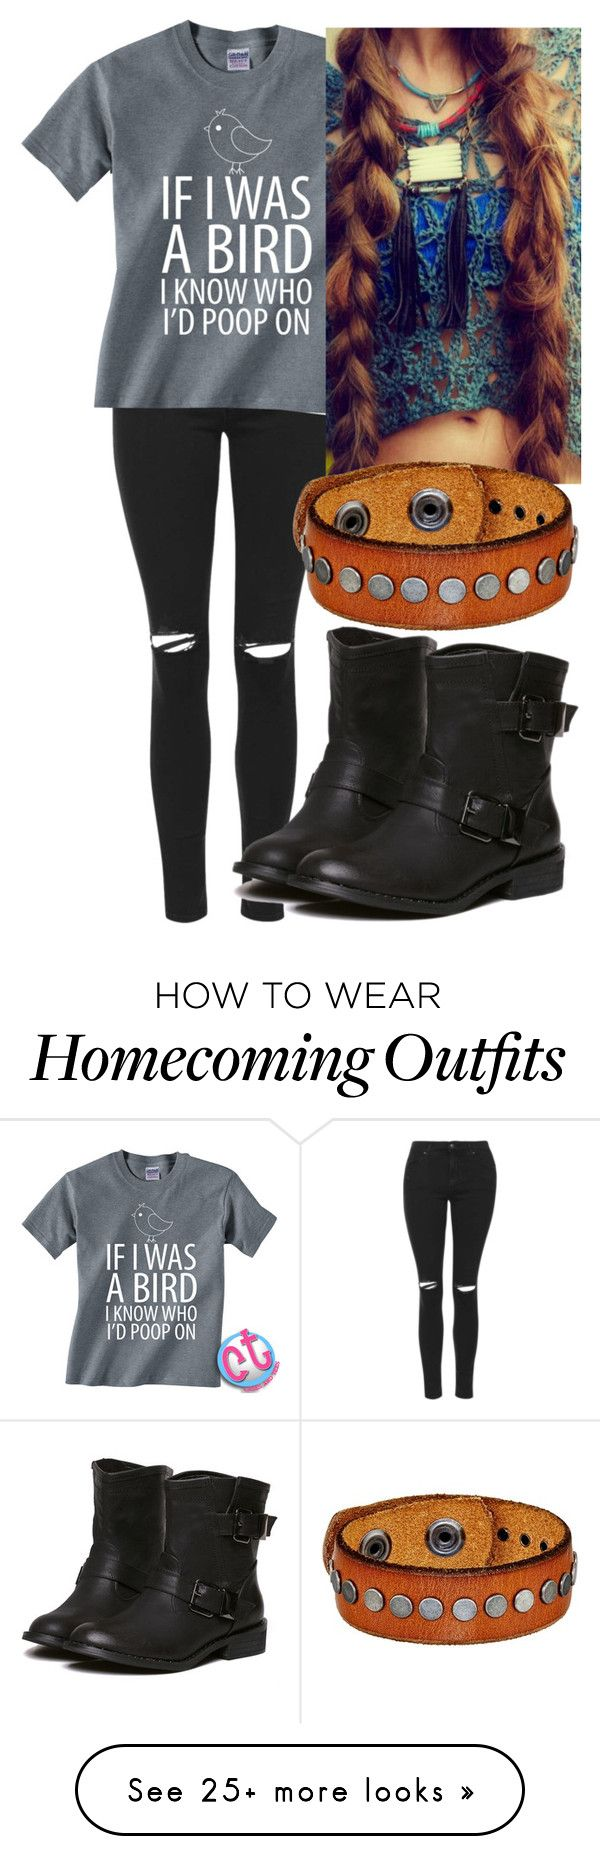 """Untitled #6018"" by assexyaswesley on Polyvore featuring Topshop and COWBOYSBELT"